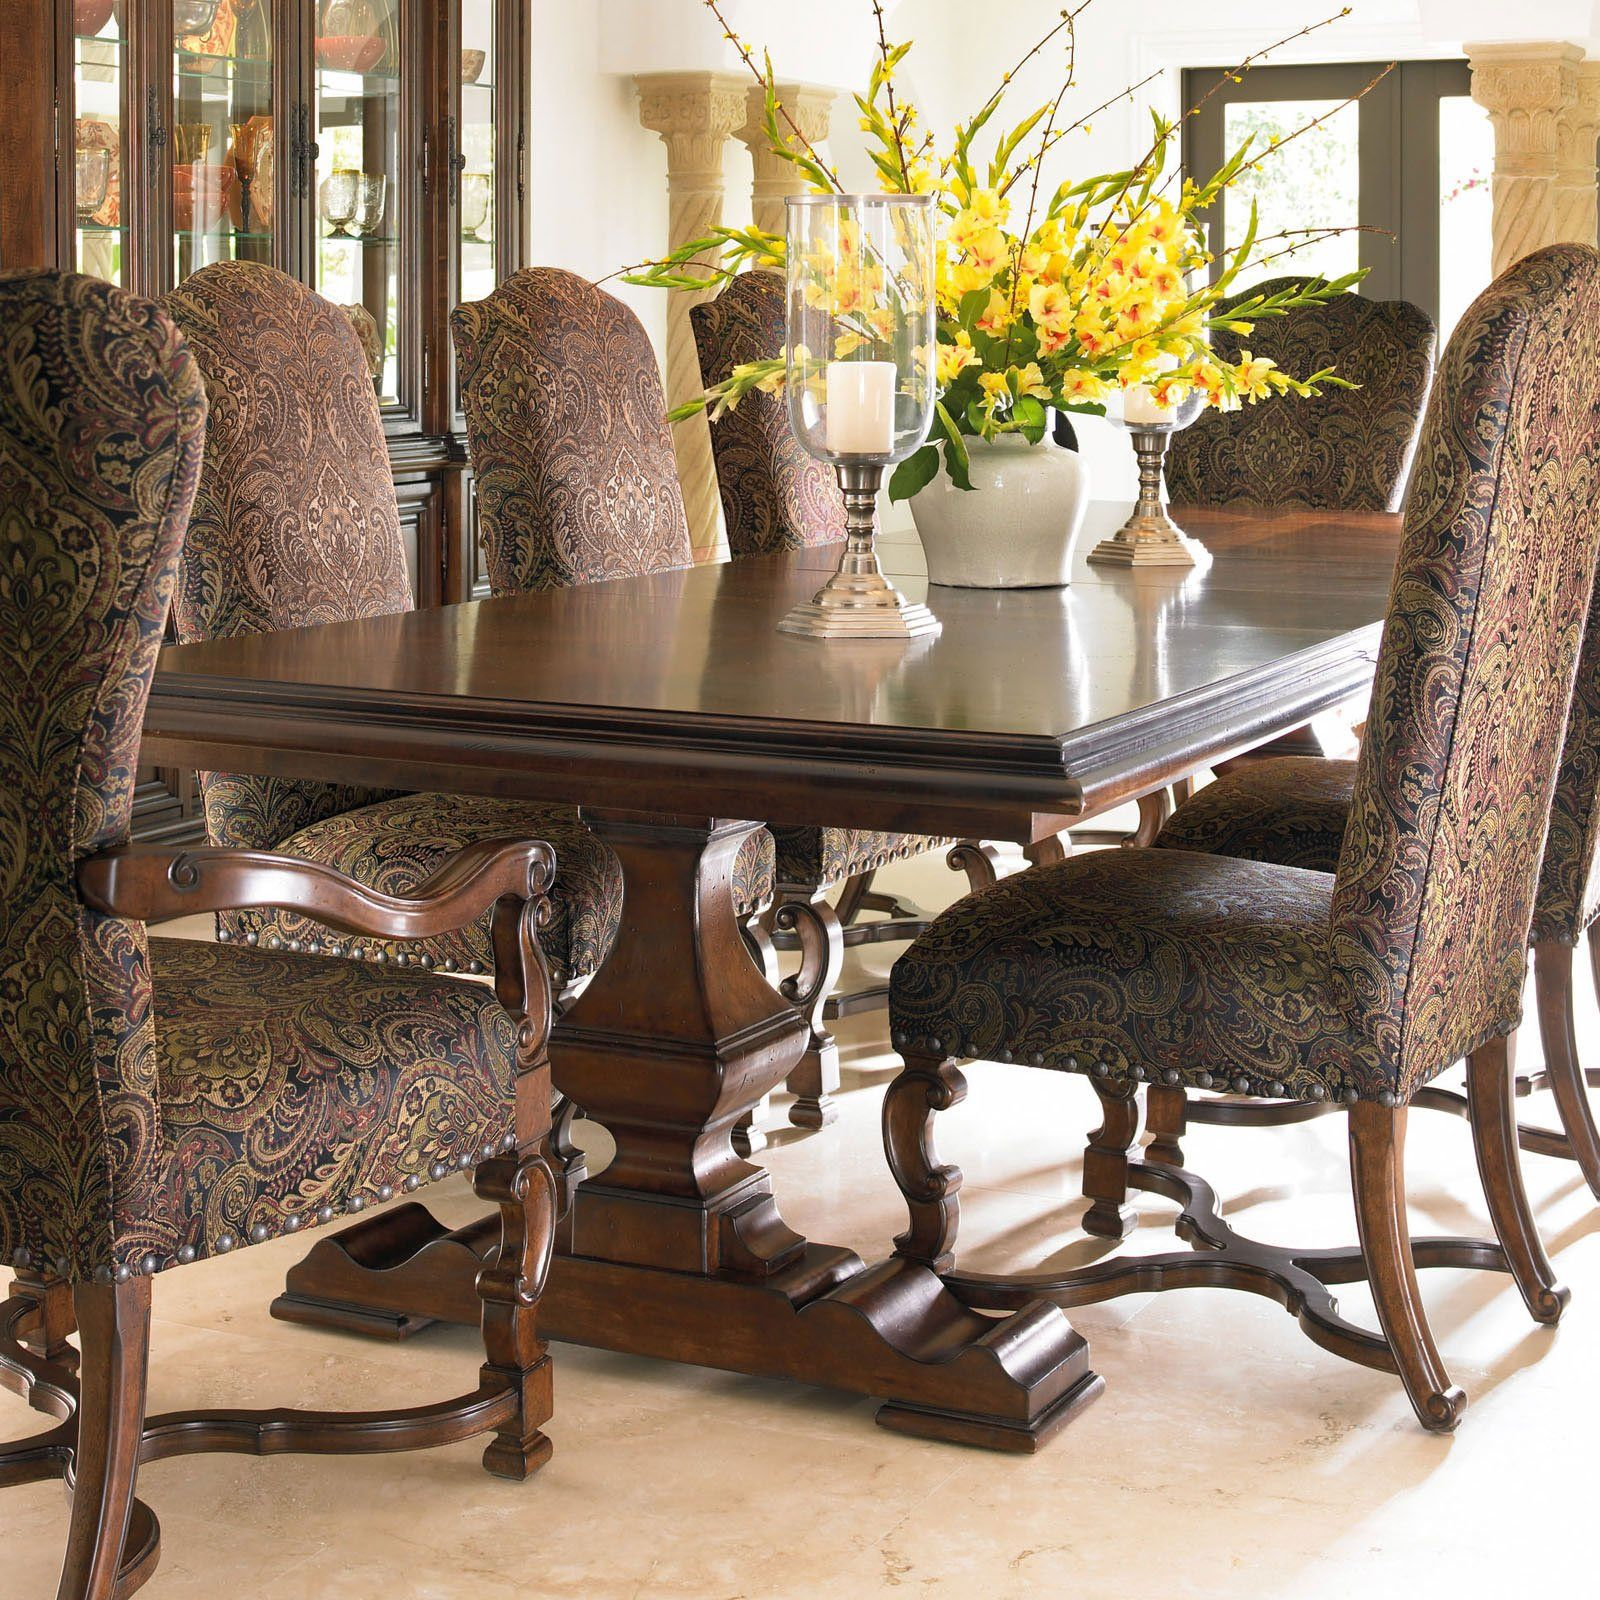 Attirant Room · Have To Have It. Stanley Furniture Montecito Grande Balustrade  Double Pedestal Dining Table ...